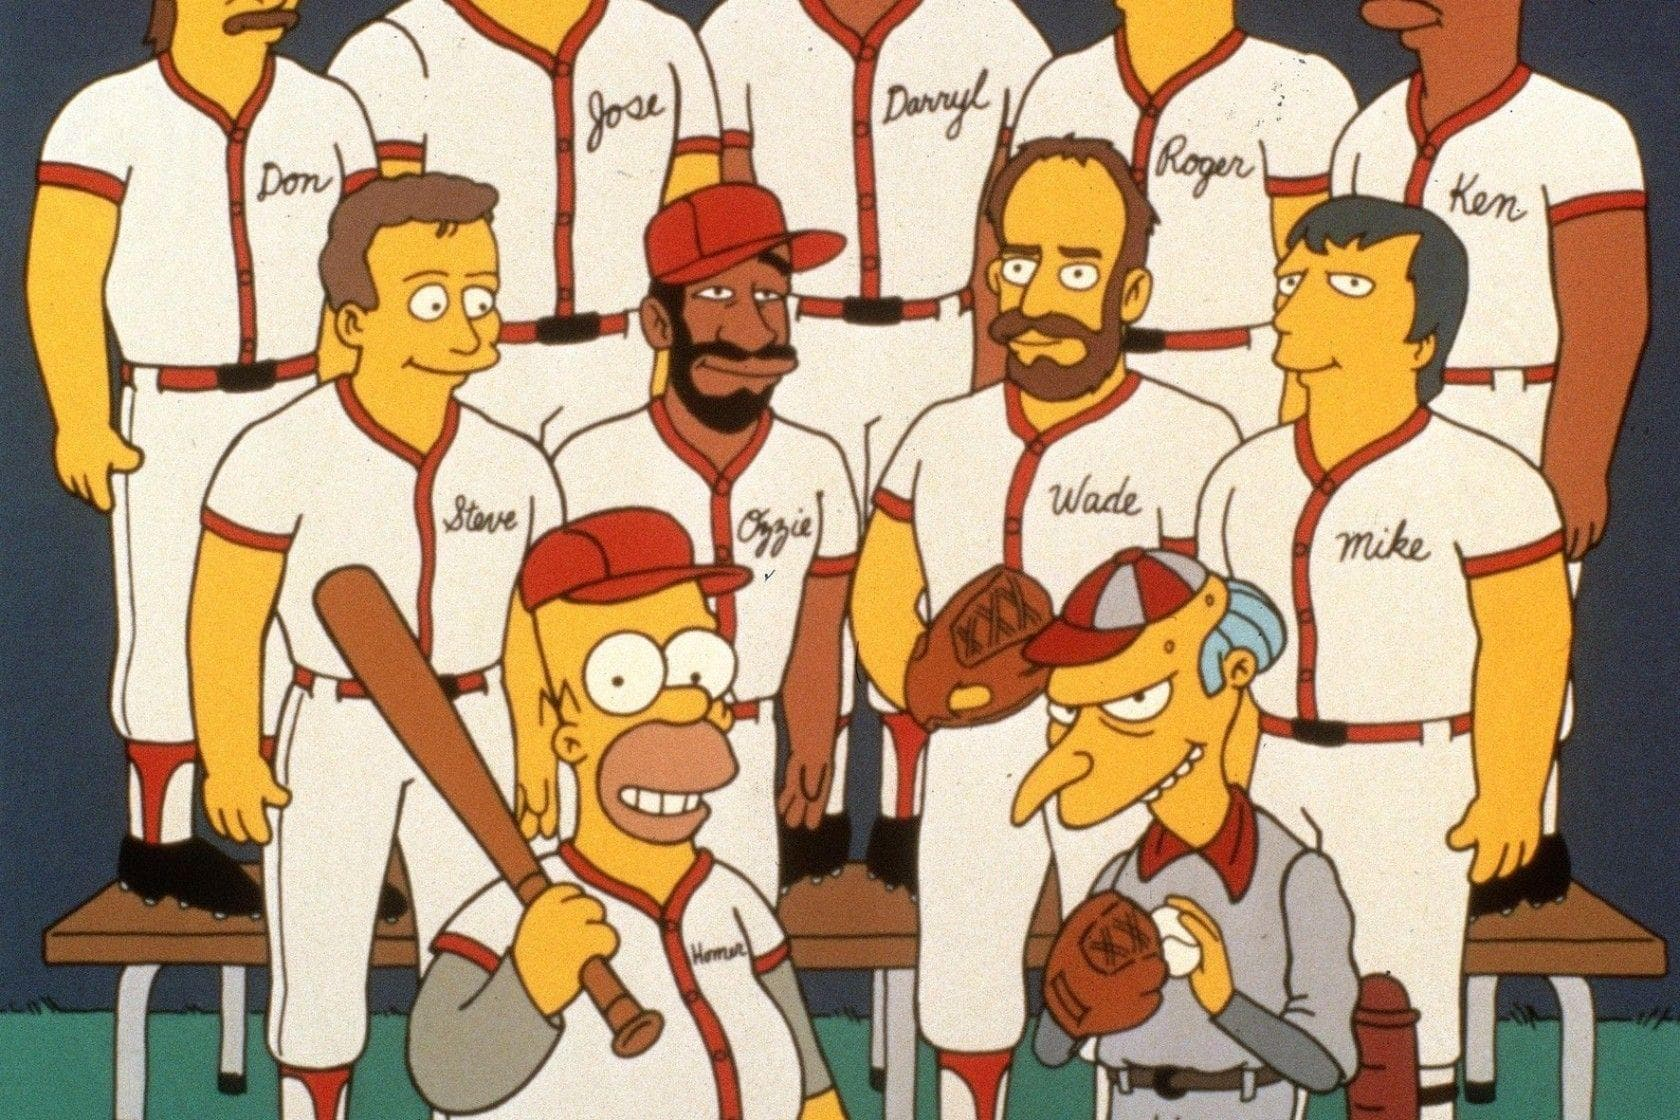 Random Fictional Sports Teams You Wish You Could Root For IRL